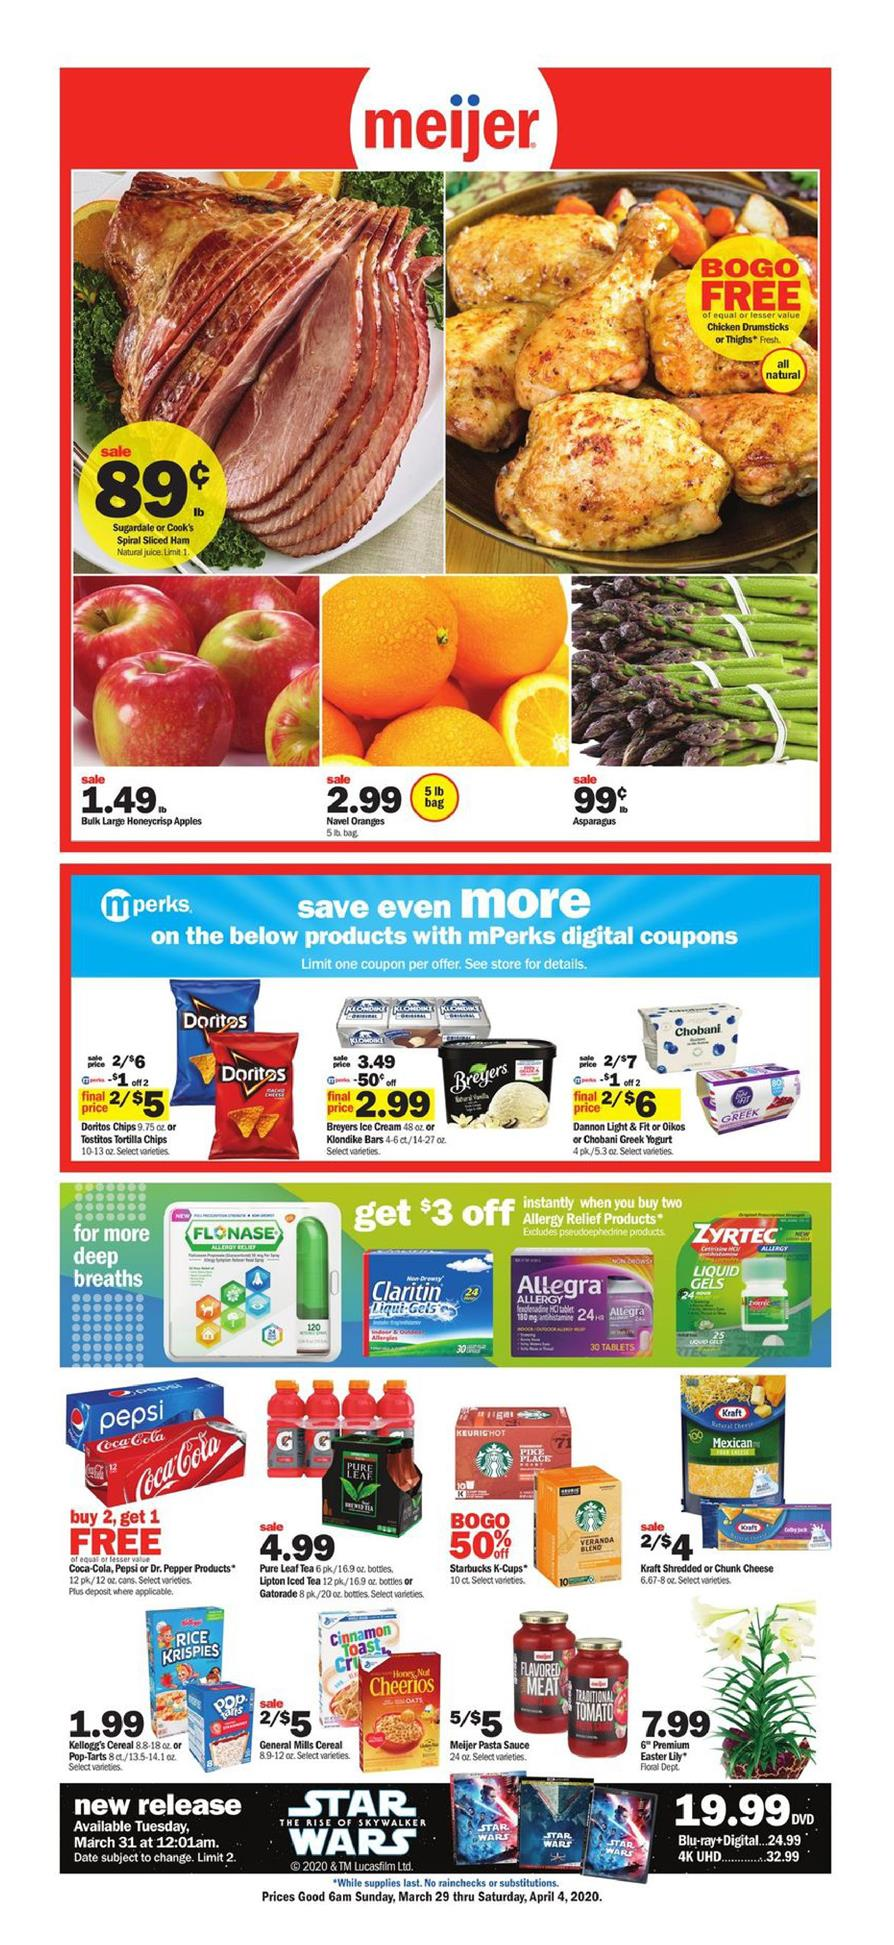 Meijer Final March Weekly Ad valid from Mar 29 – Apr 4, 2020